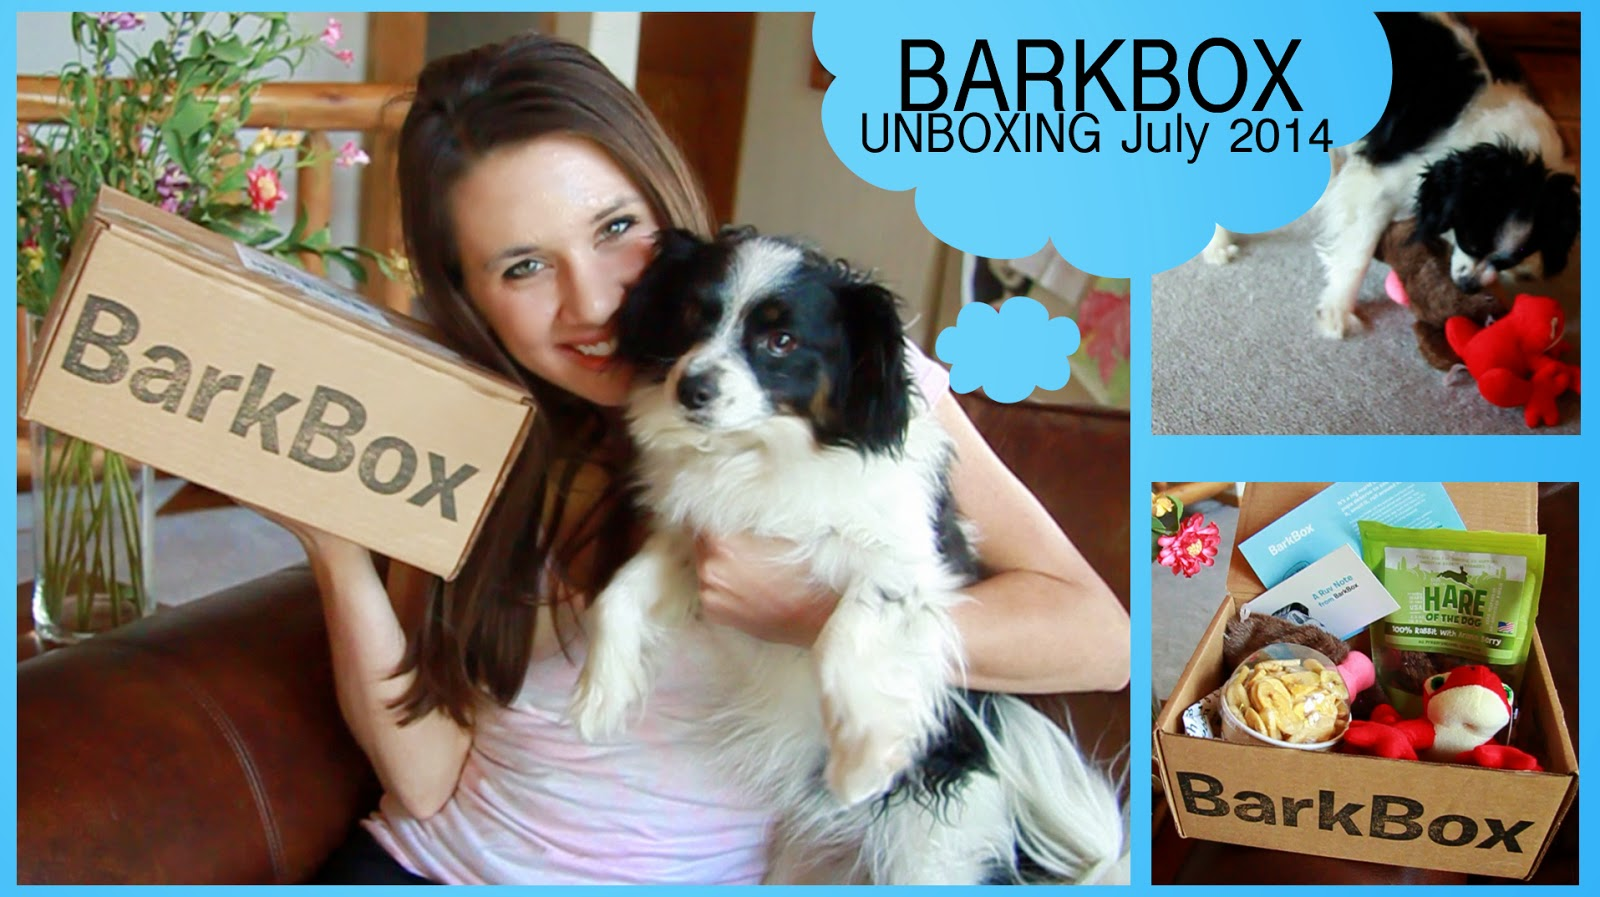 barkbox unboxing july 2014